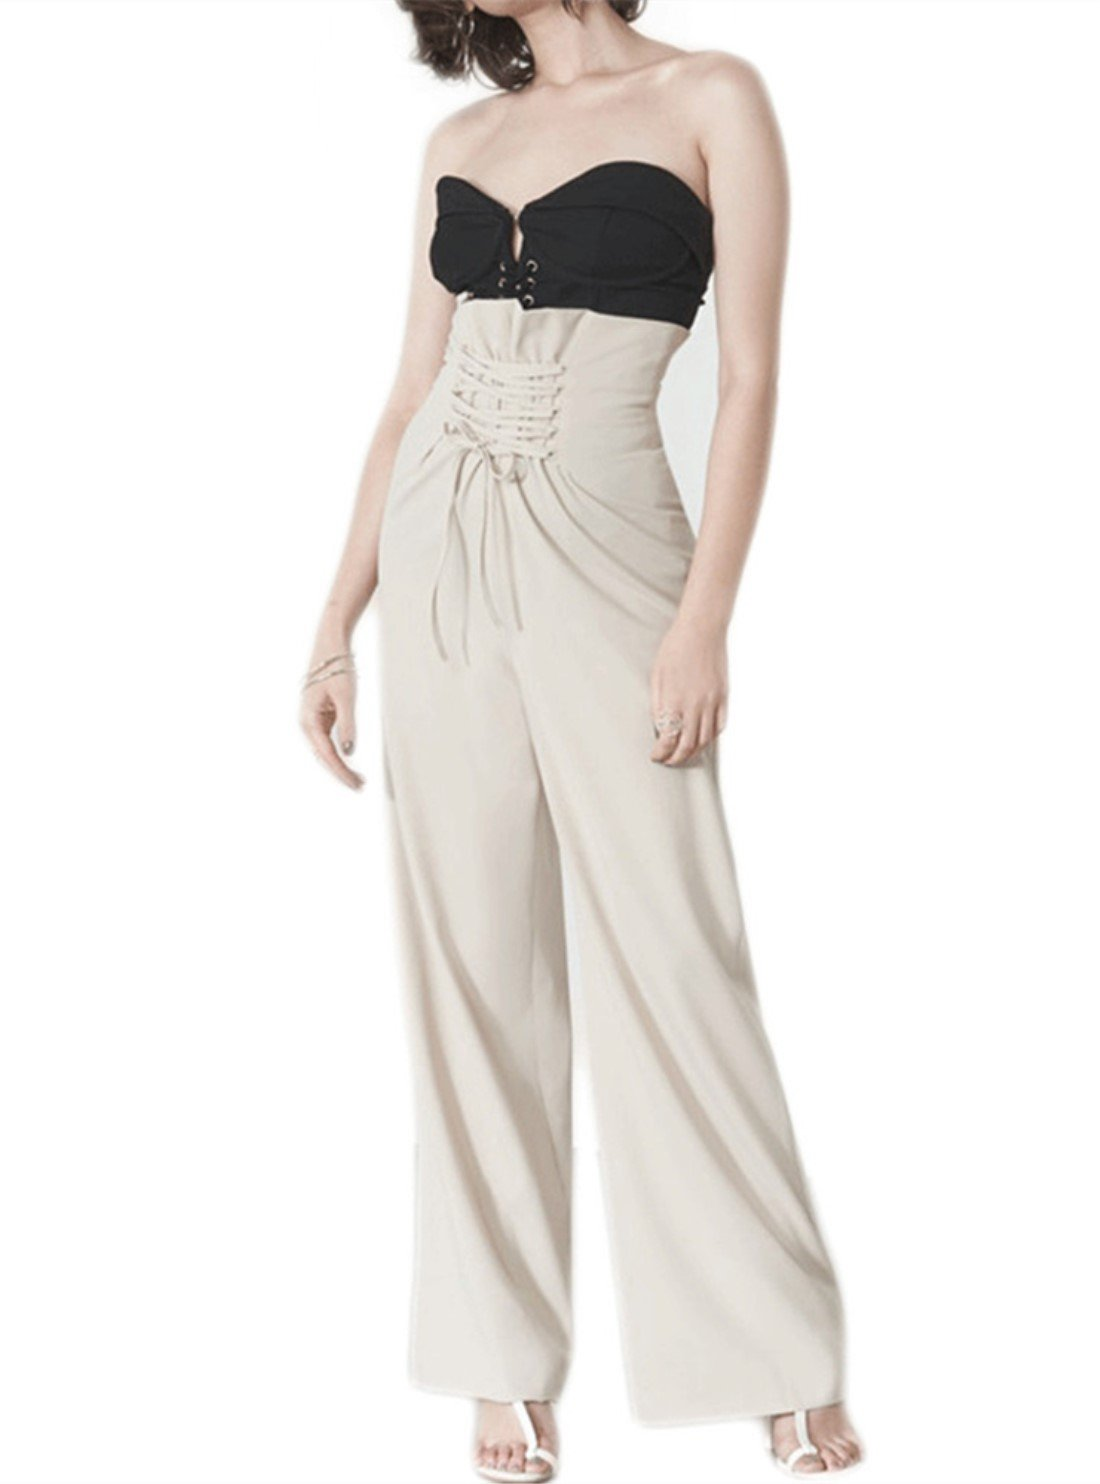 Womens Palazzo High Waist Stretch Pants OL Lace Up Corset Wide Leg Trousers Slim Fit (XL, Beige)